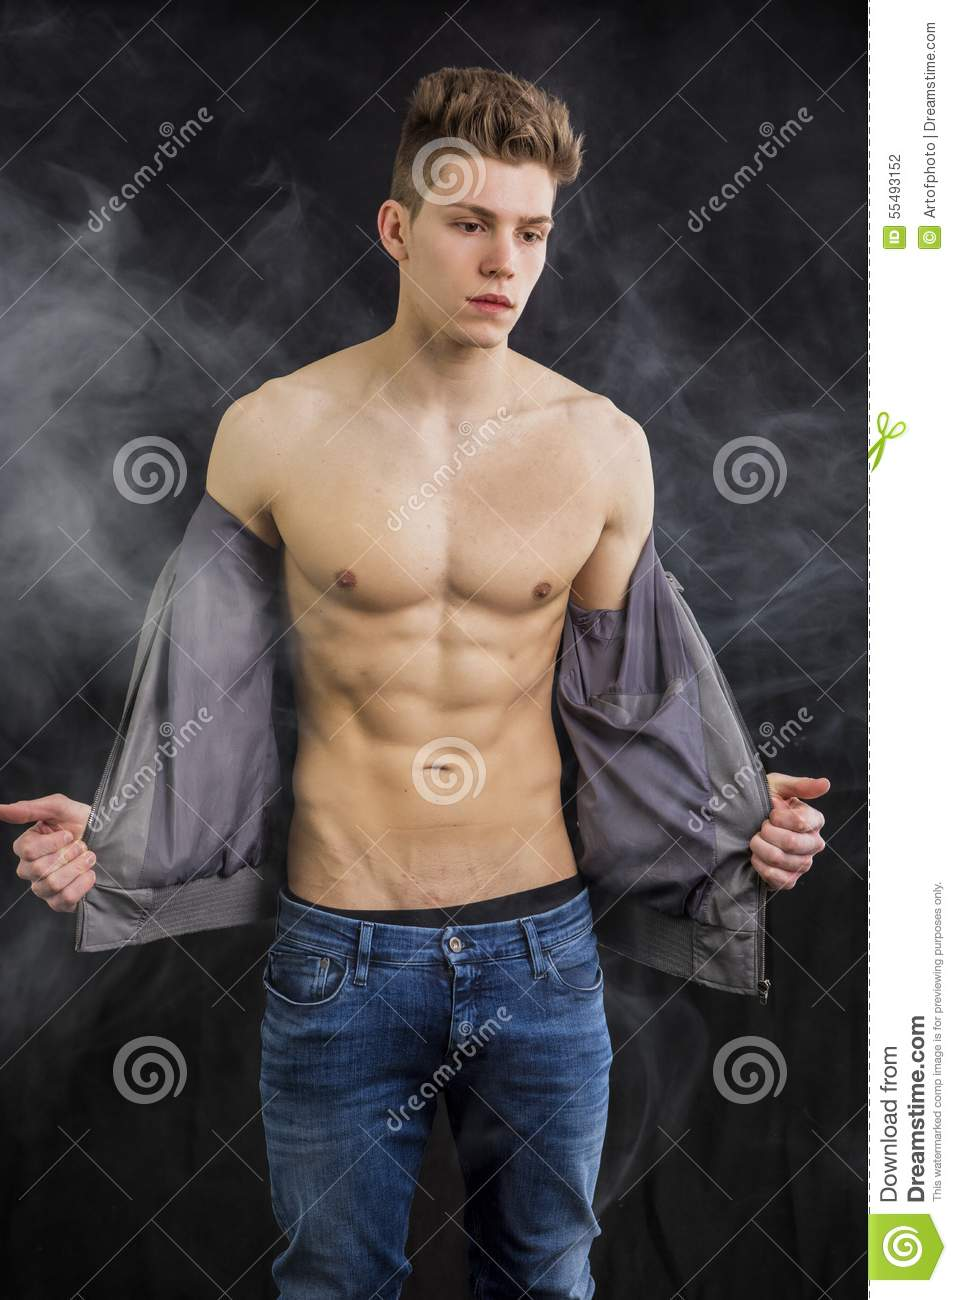 Stylish Hair Style Of Man Attractive Muscular Trendy Young Man Undressing Stock